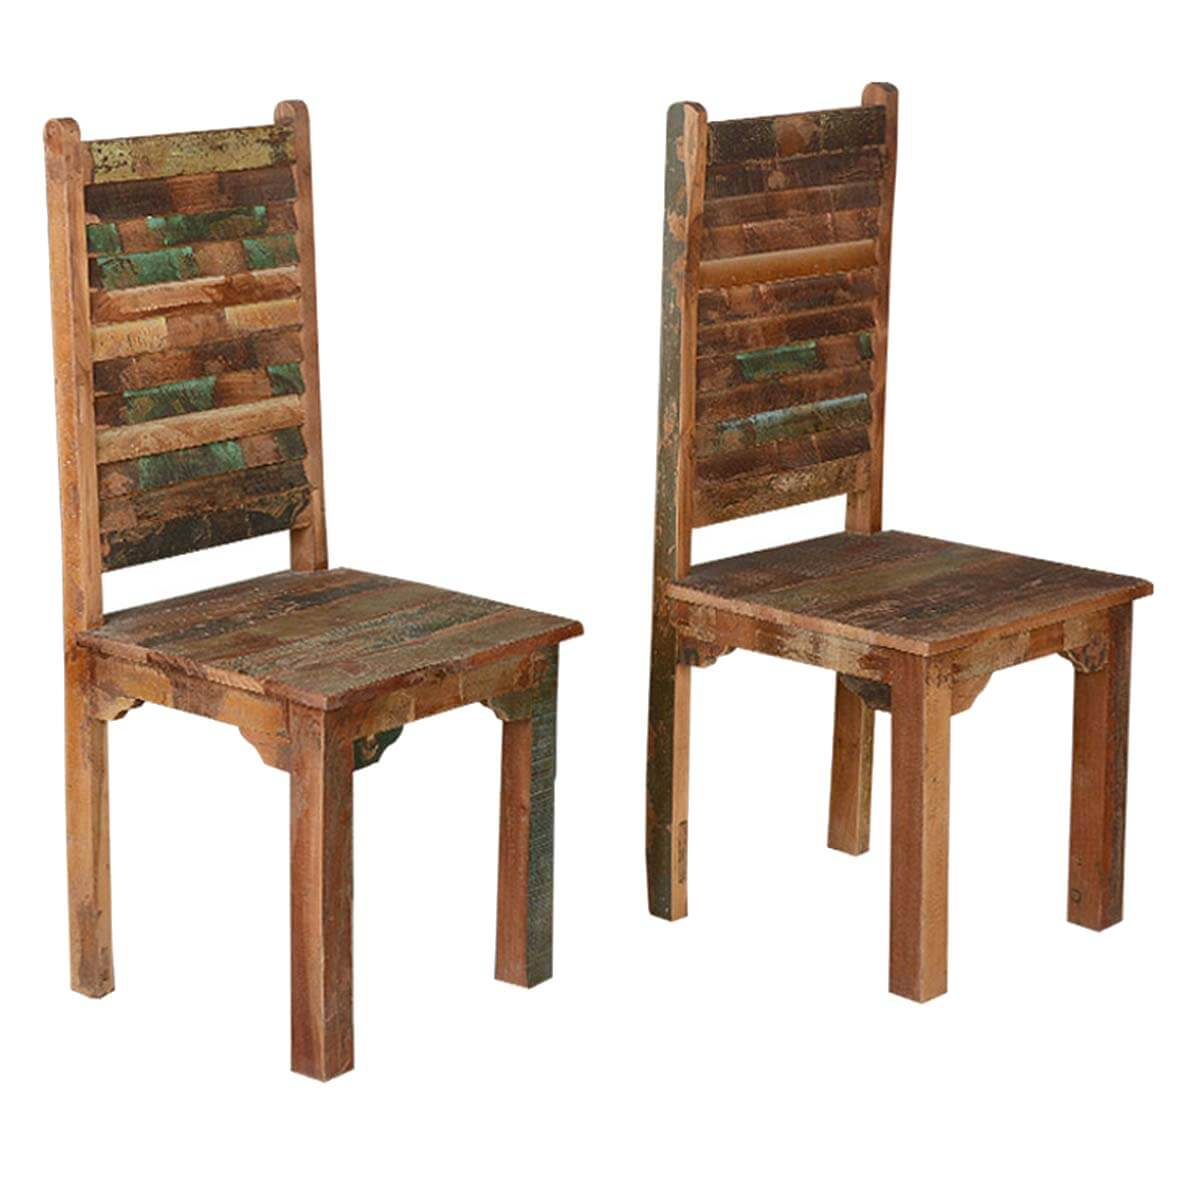 Rustic Distressed Reclaimed Wood Multi Color Dining Chairs Set of 2